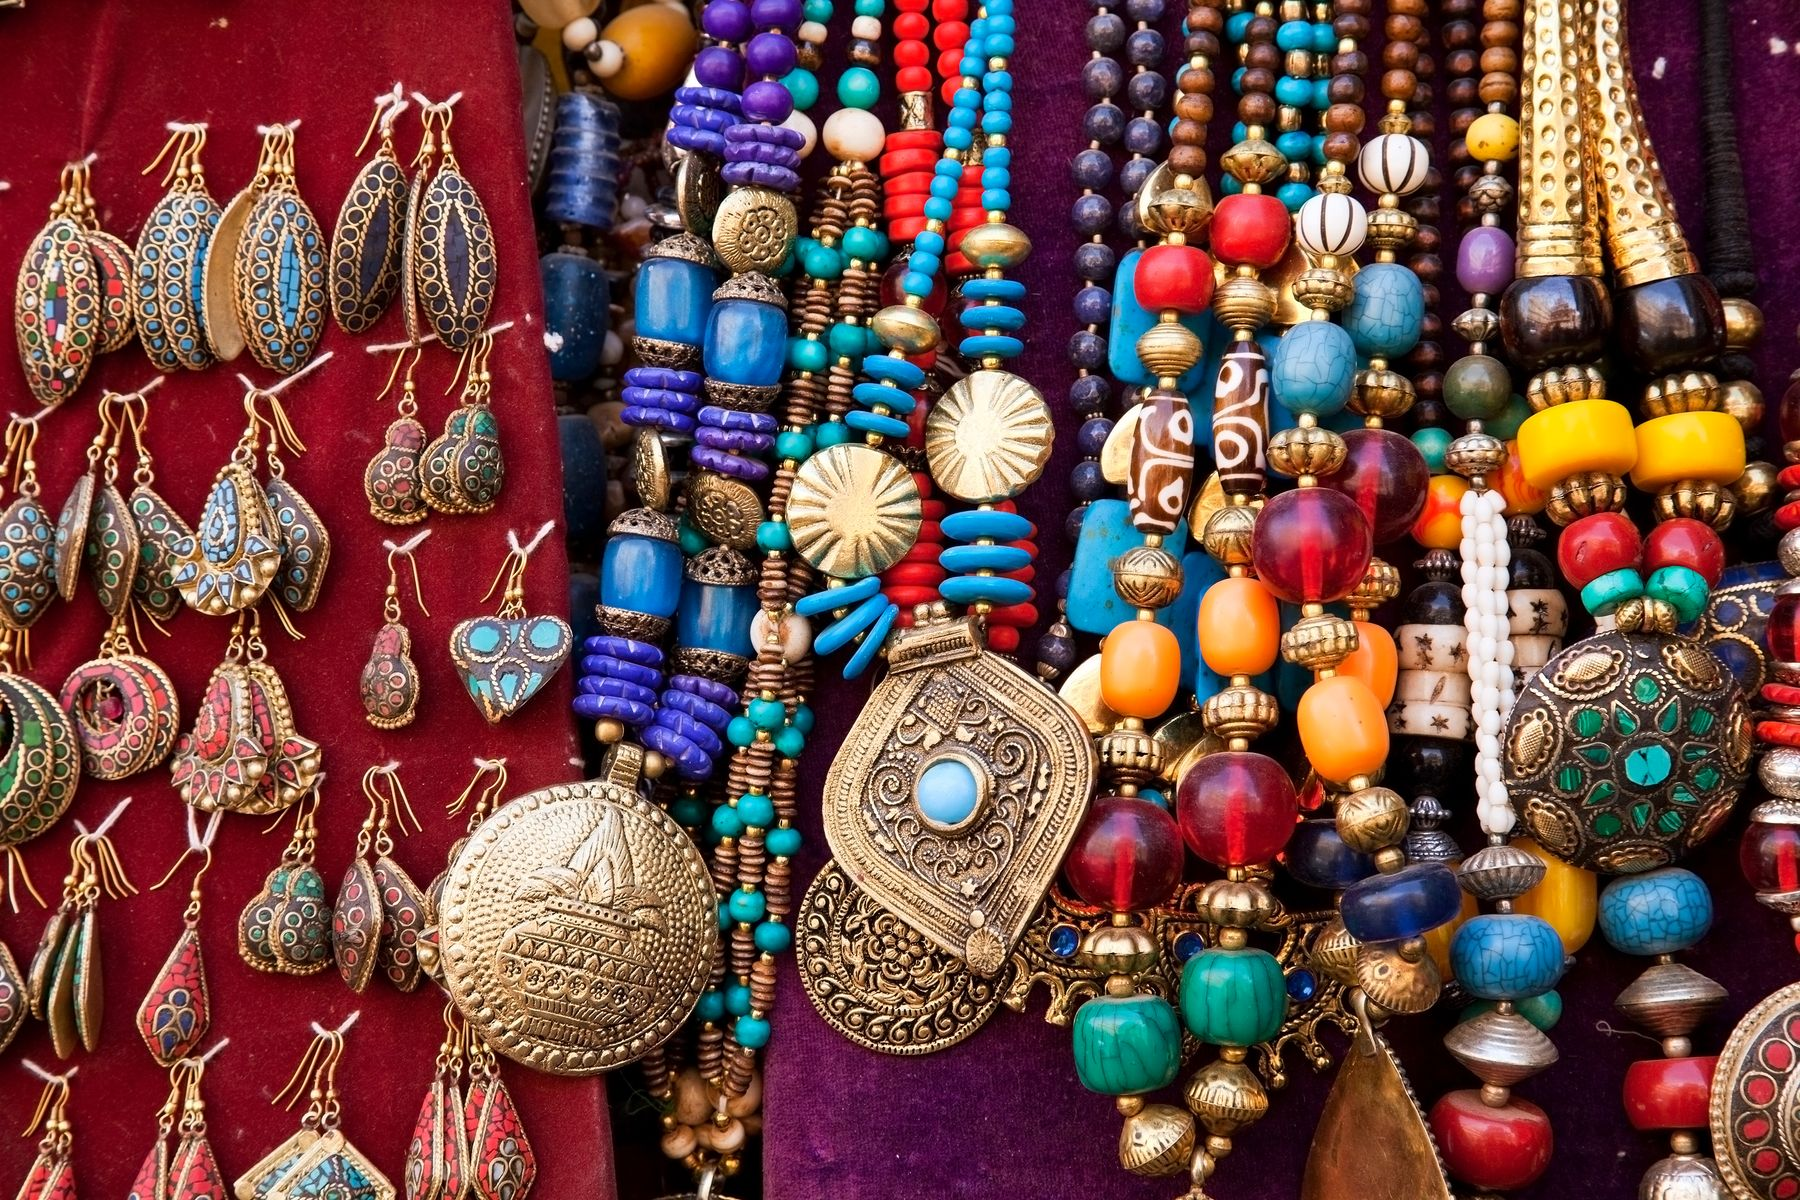 At Yaiza, you can buy Lanzarote gemstones and jewellery